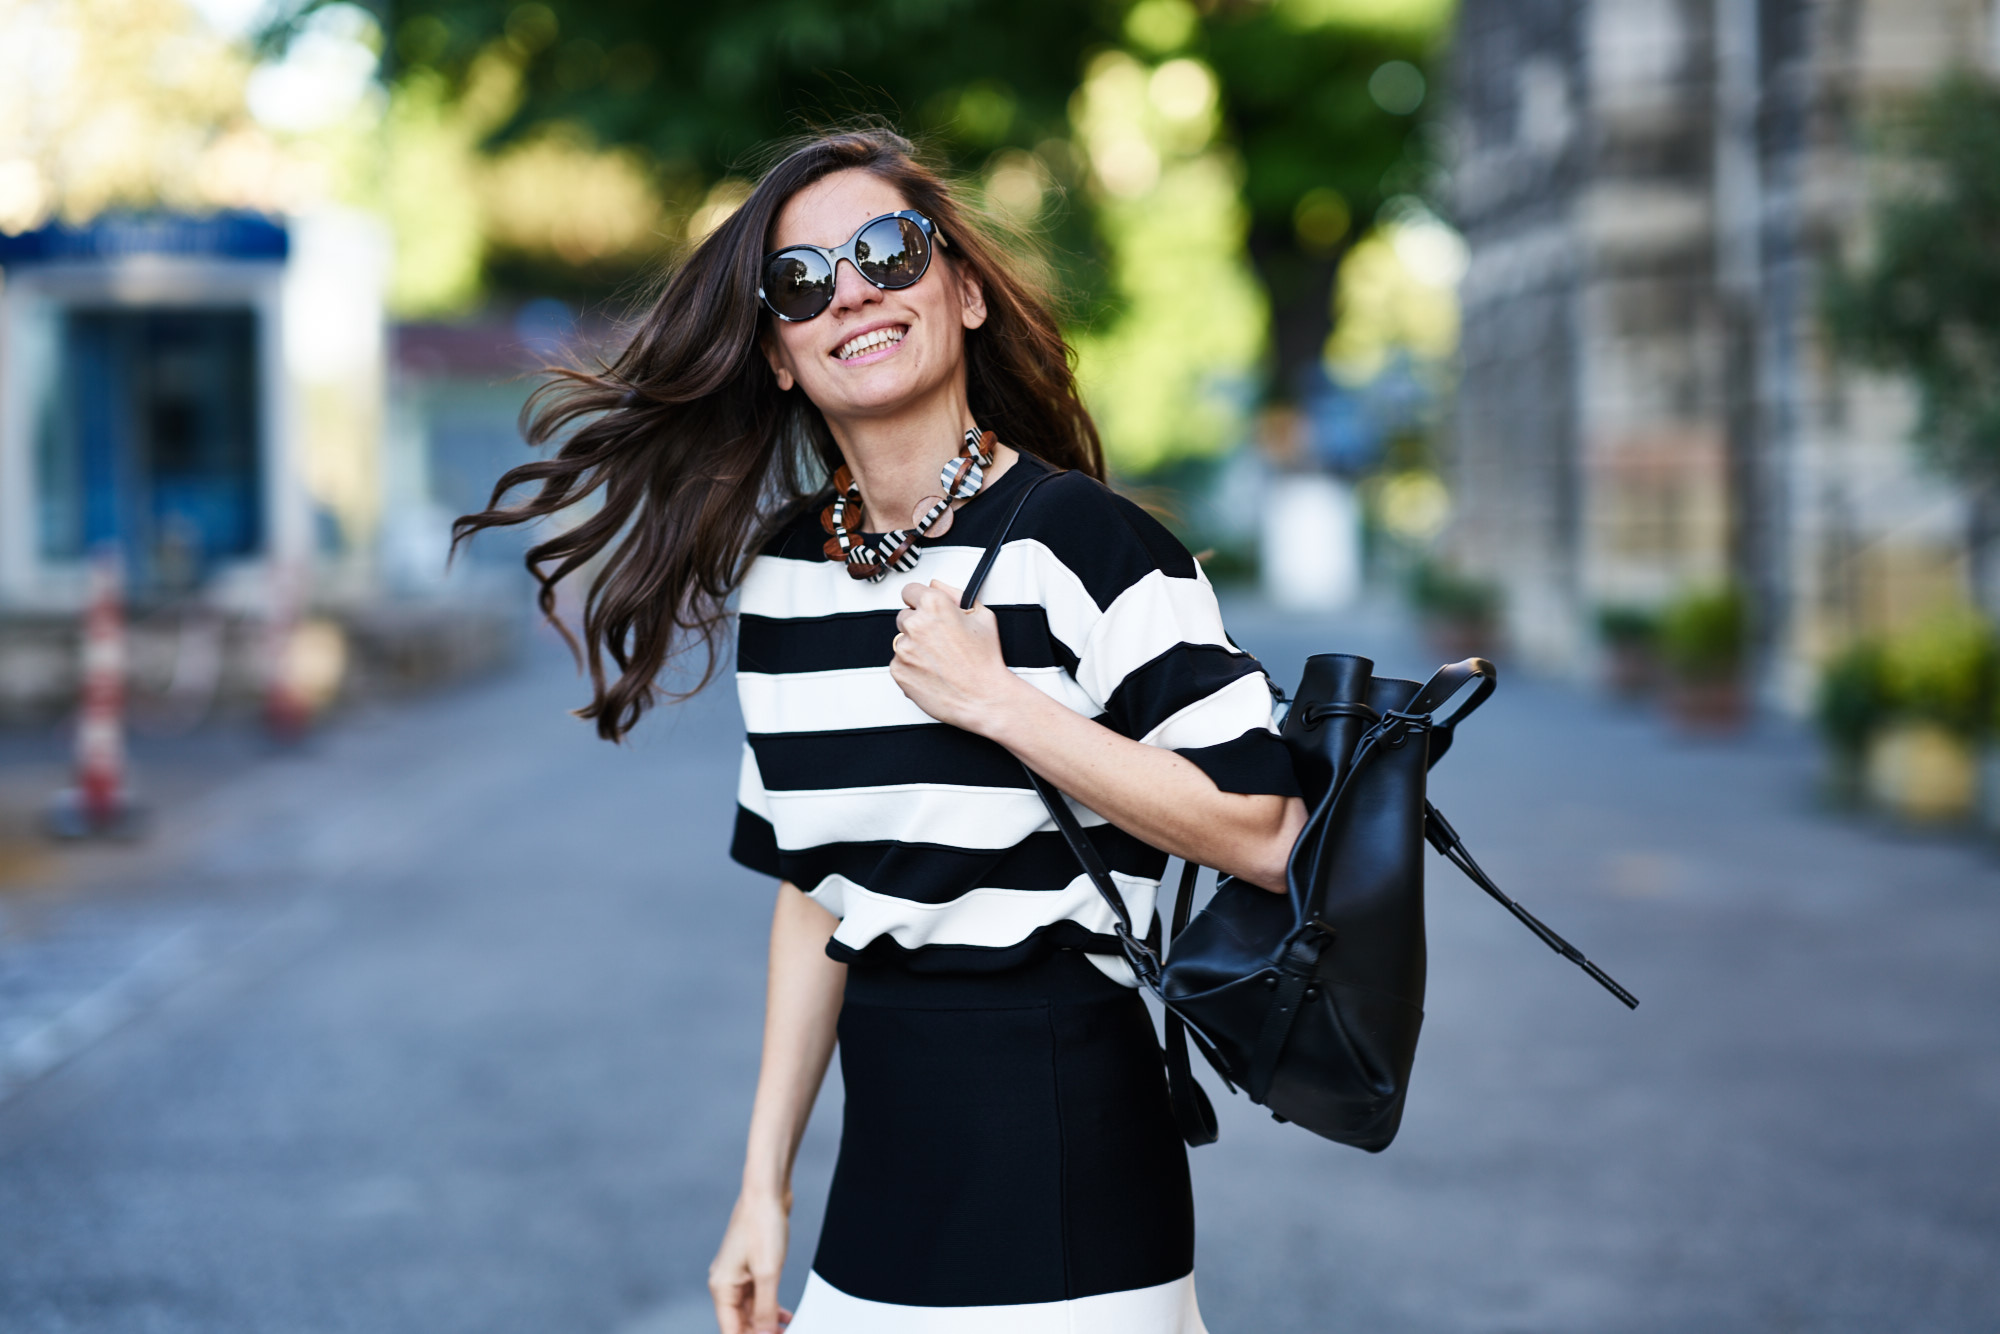 billur saatci, offnegiysem, street style, turkish style blogger, bw, stripes, black and white, opening ceremony, phillip lim, miu miu, house of camellia, black pepper, boyner, boyner fresh